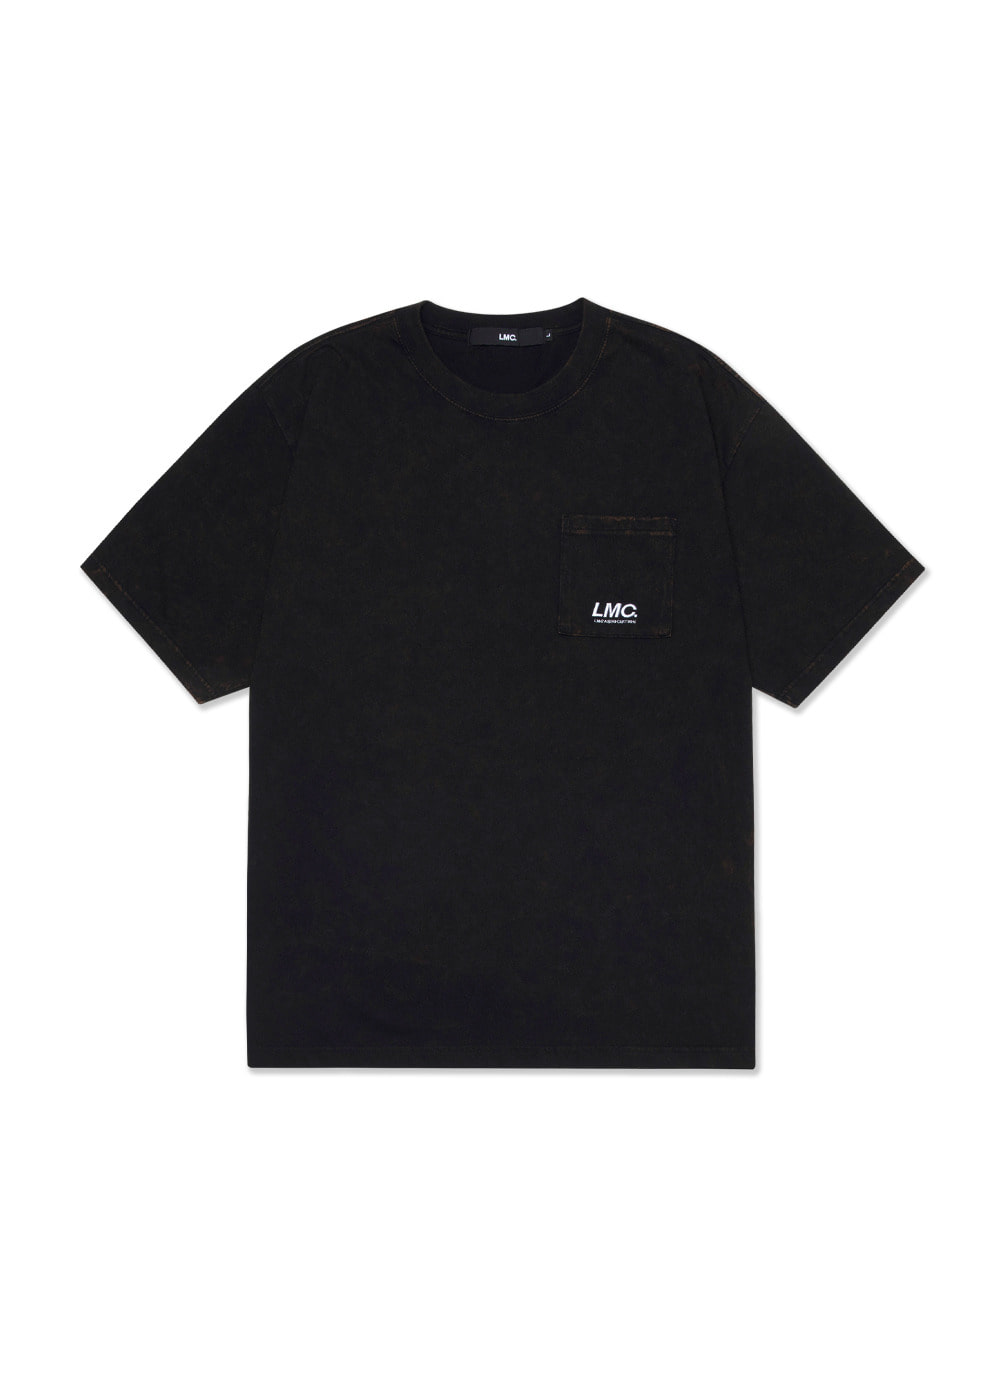 LMC ACID WASHED POCKET TEE black